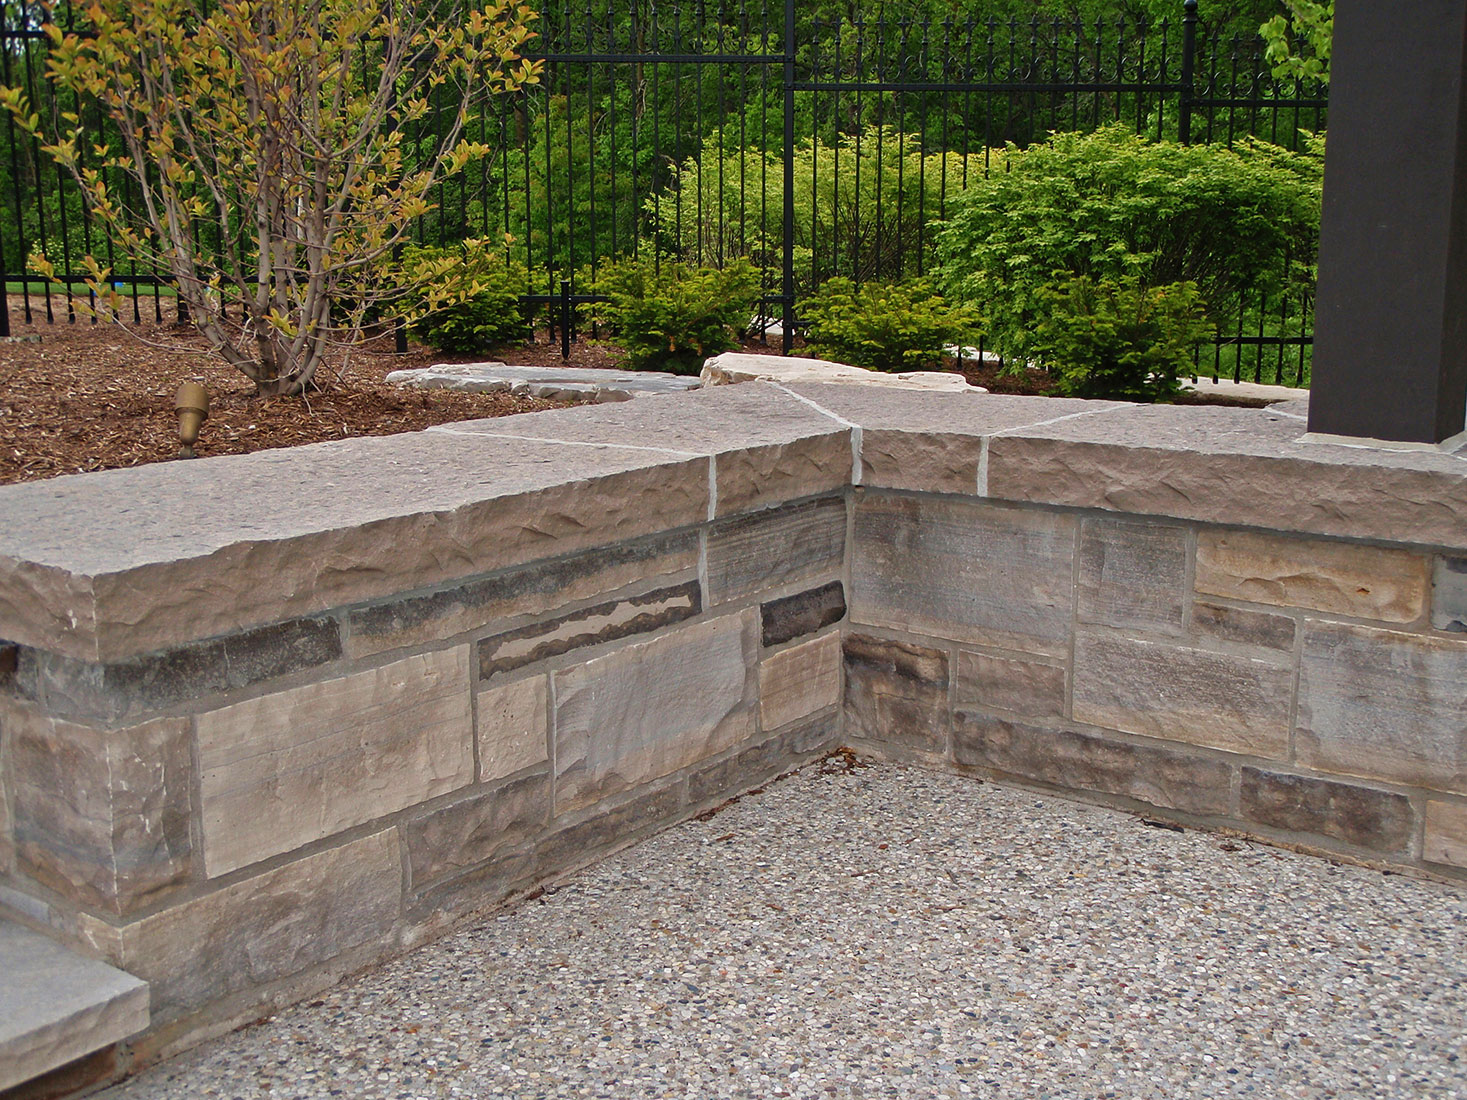 Wiarton Natural Bed Building Stone Coursing Ledgerock